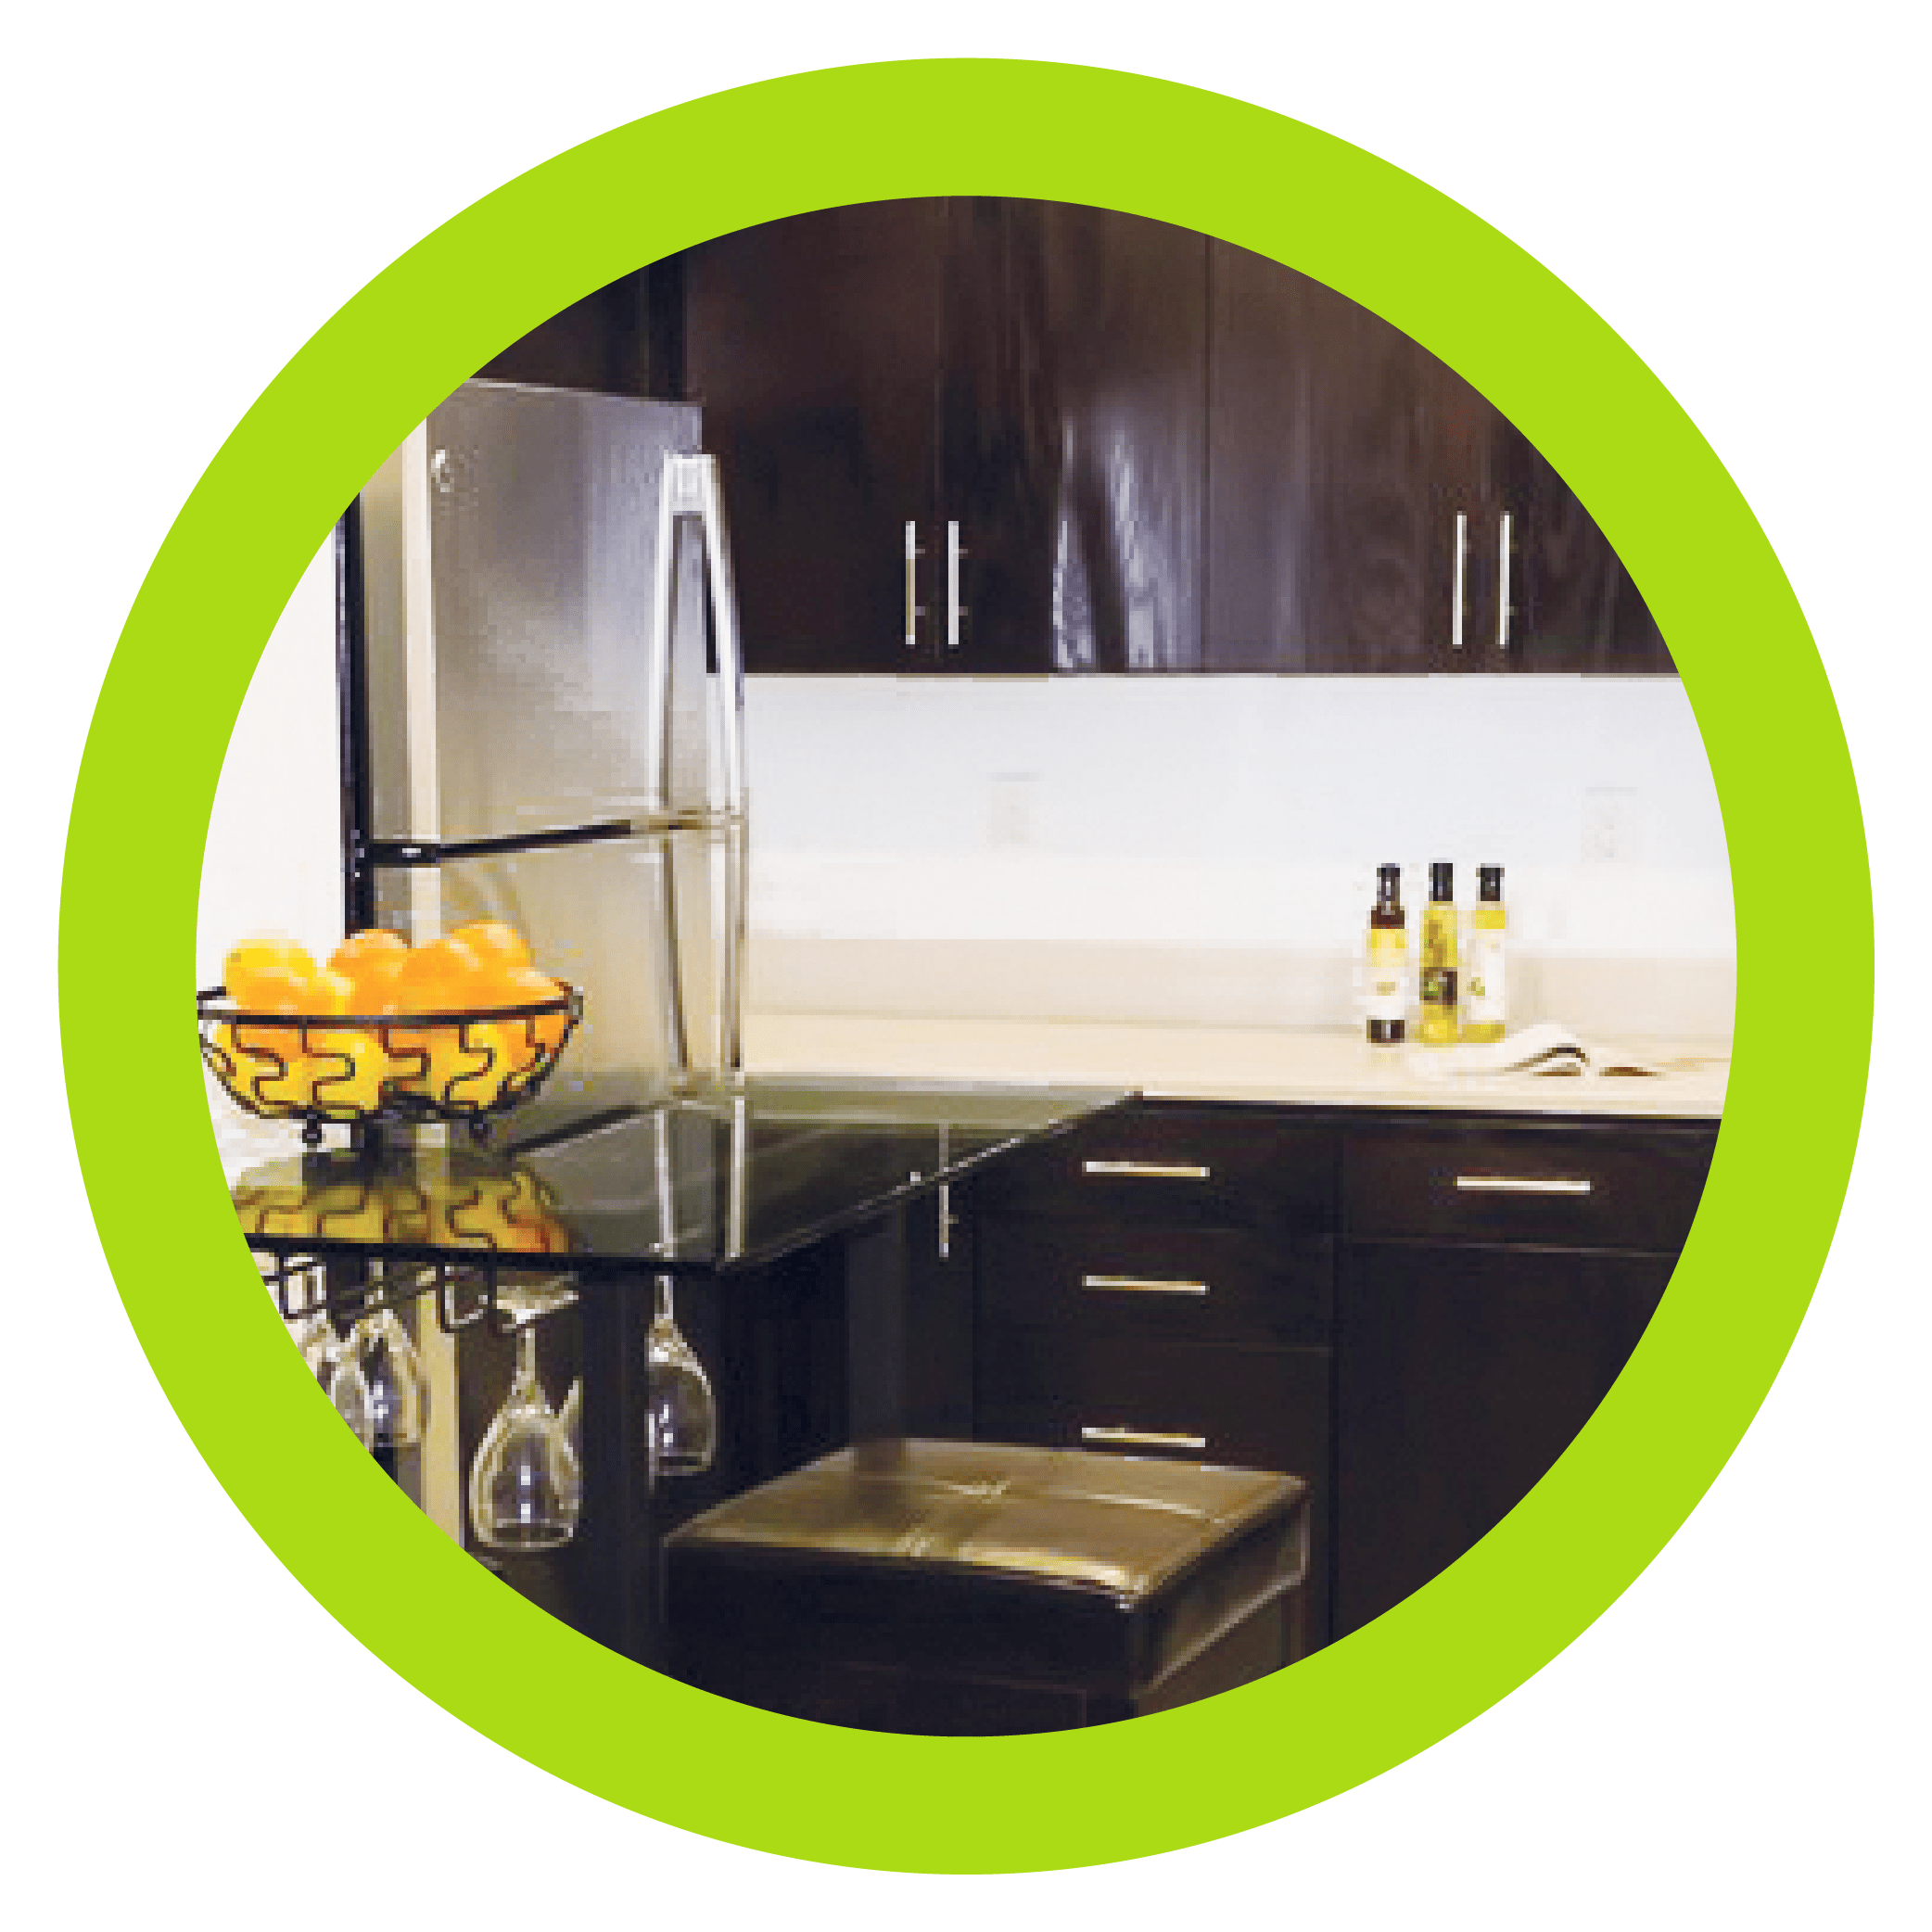 Link to schedule your tour of Citron in Ventura, California